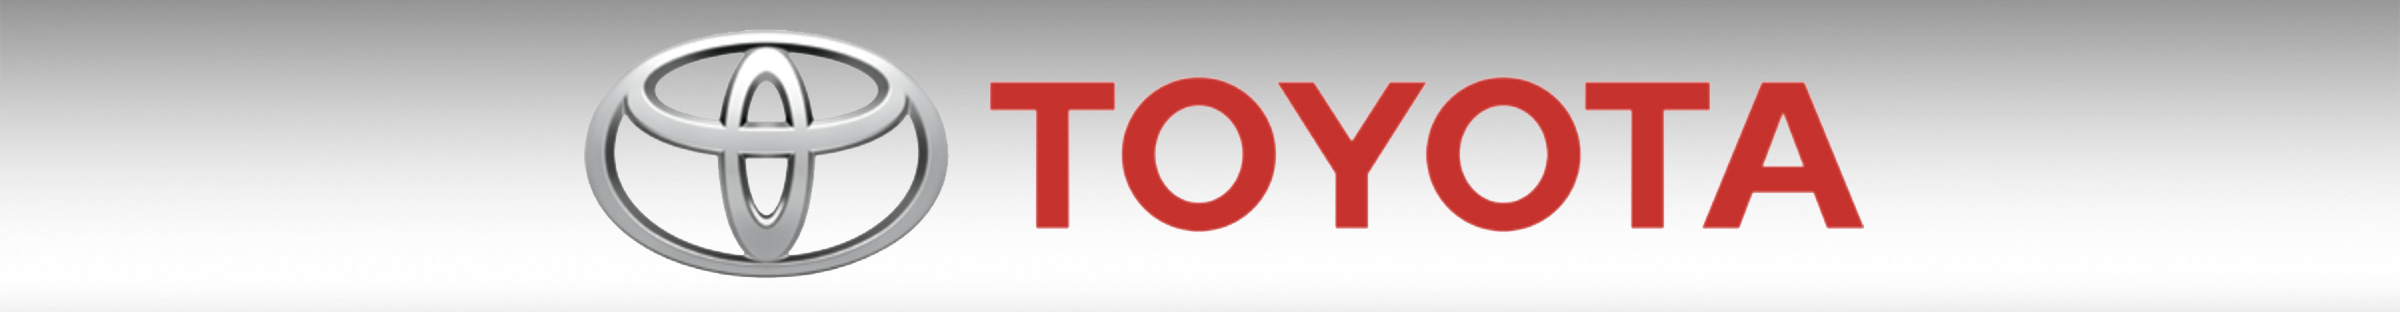 Toyota Ride and Drive at the Sac Auto Show